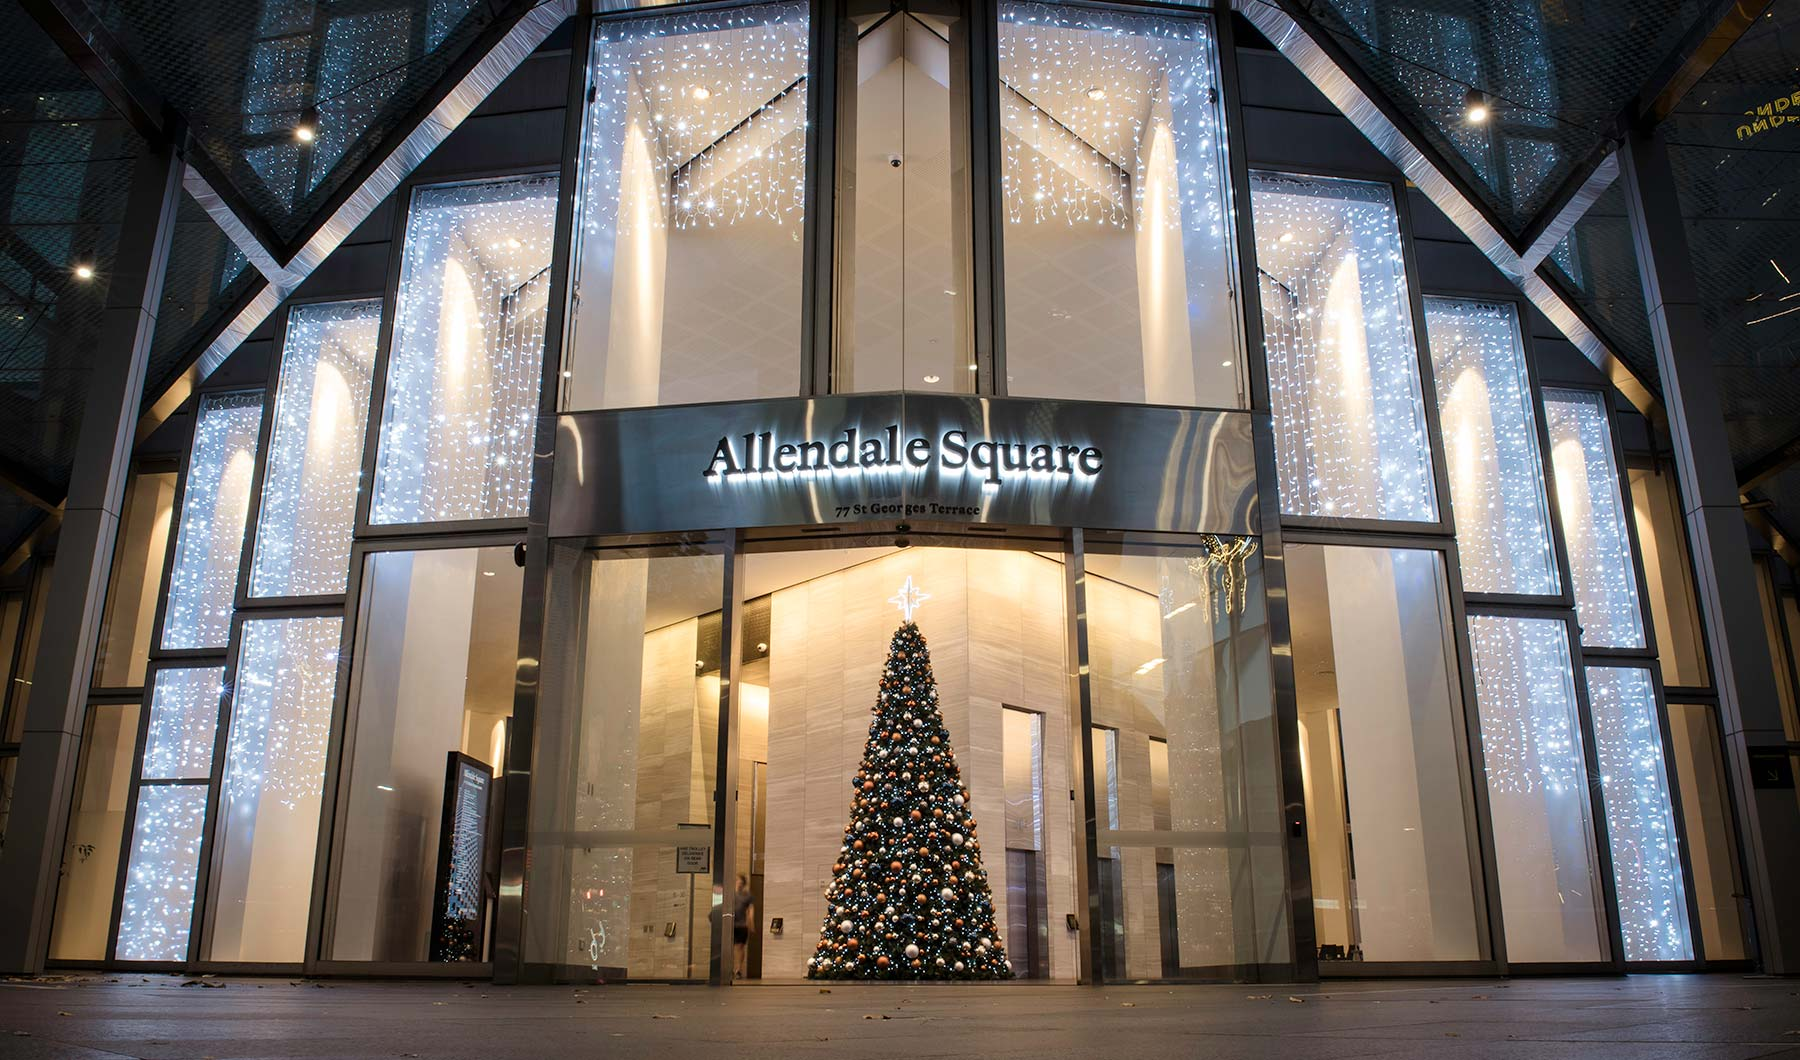 External view of Allendale Squar Christmas decorations including 6m tall Christmas tree and cool white curtain lights